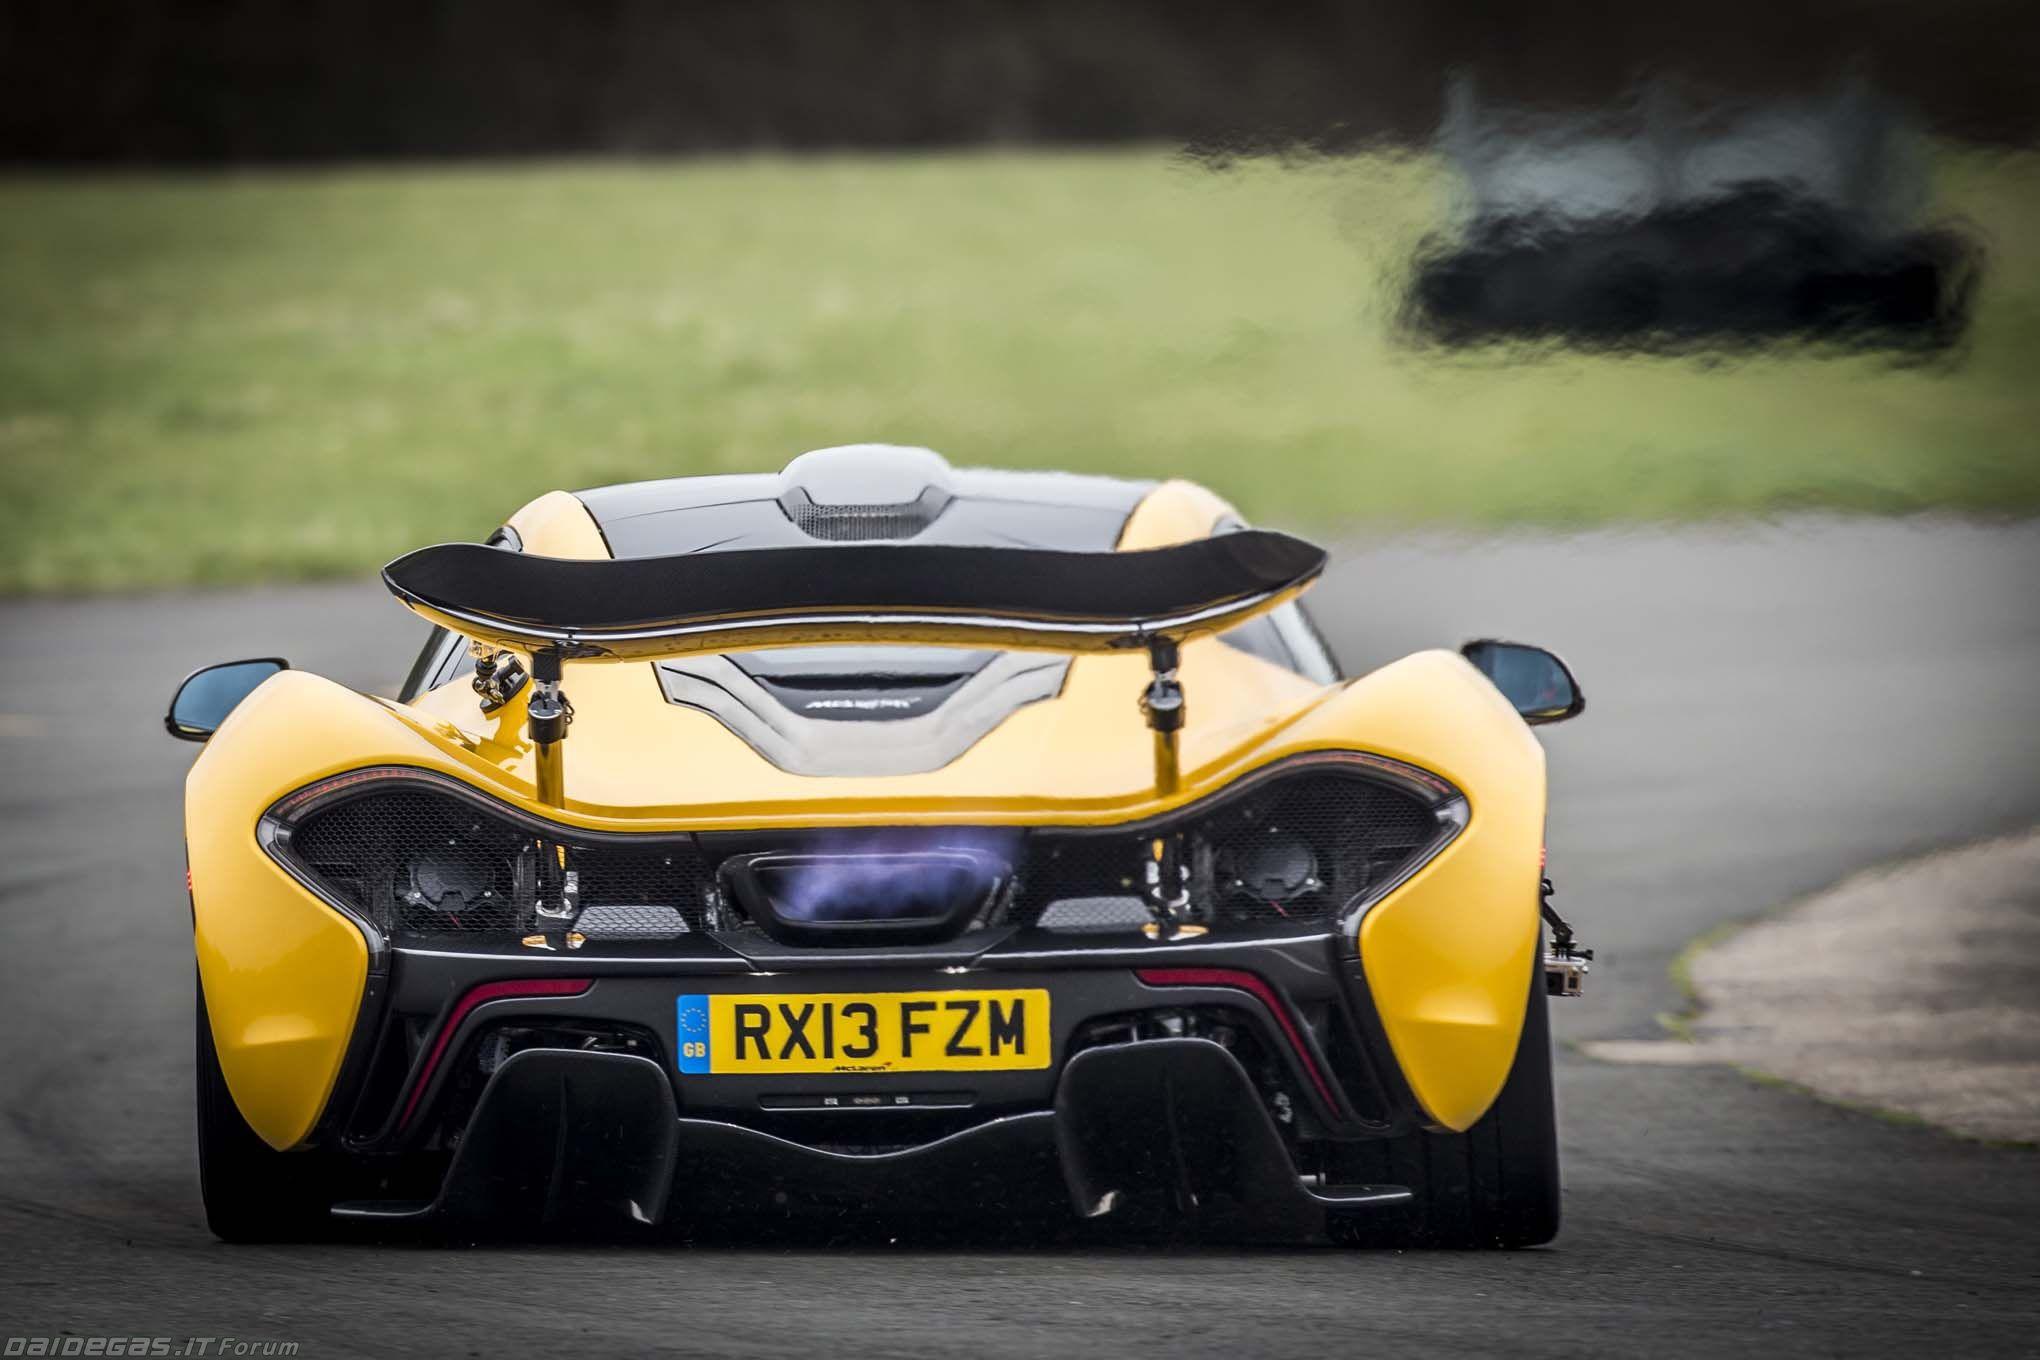 mclaren p1 backfire | the journey | pinterest | cars, mclaren p1 and